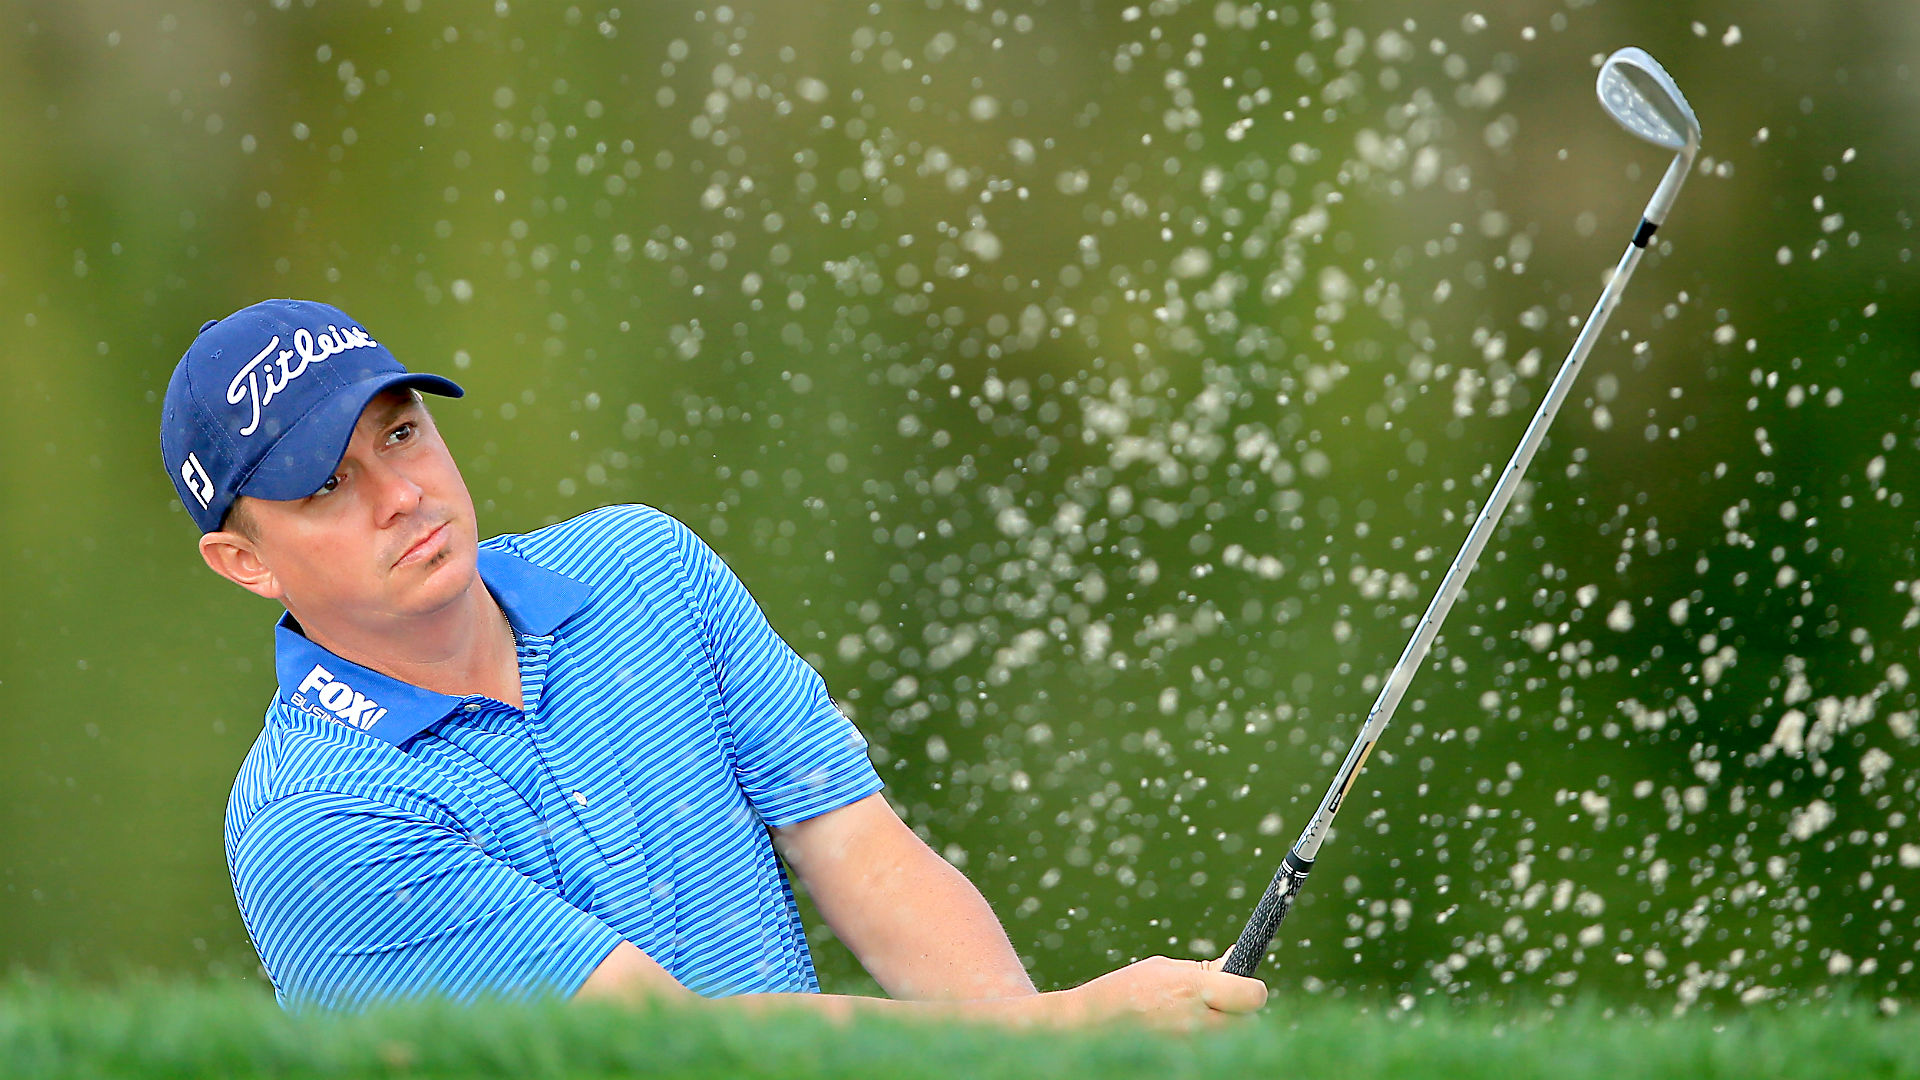 dufner-jason022515-getty-ftr.jpg